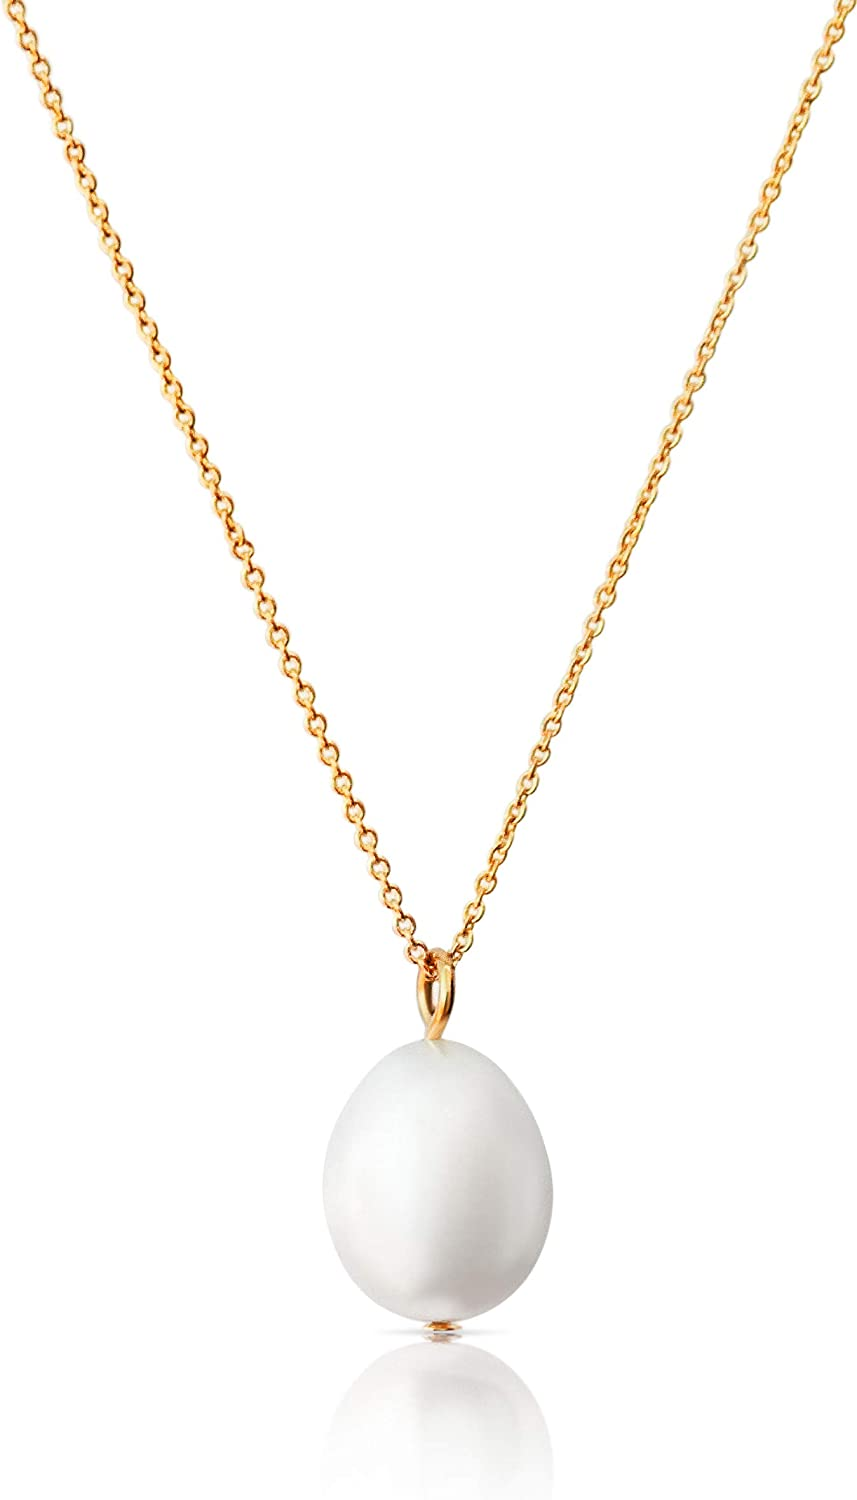 Single Pearl Necklace for Women | White Dainty Pearl Drop Pendant, 14k Gold Dipped | Elegant Gold Chain Necklace, Perfect for Layering | 14k Gold Necklace for Women | June Birthstone Necklace